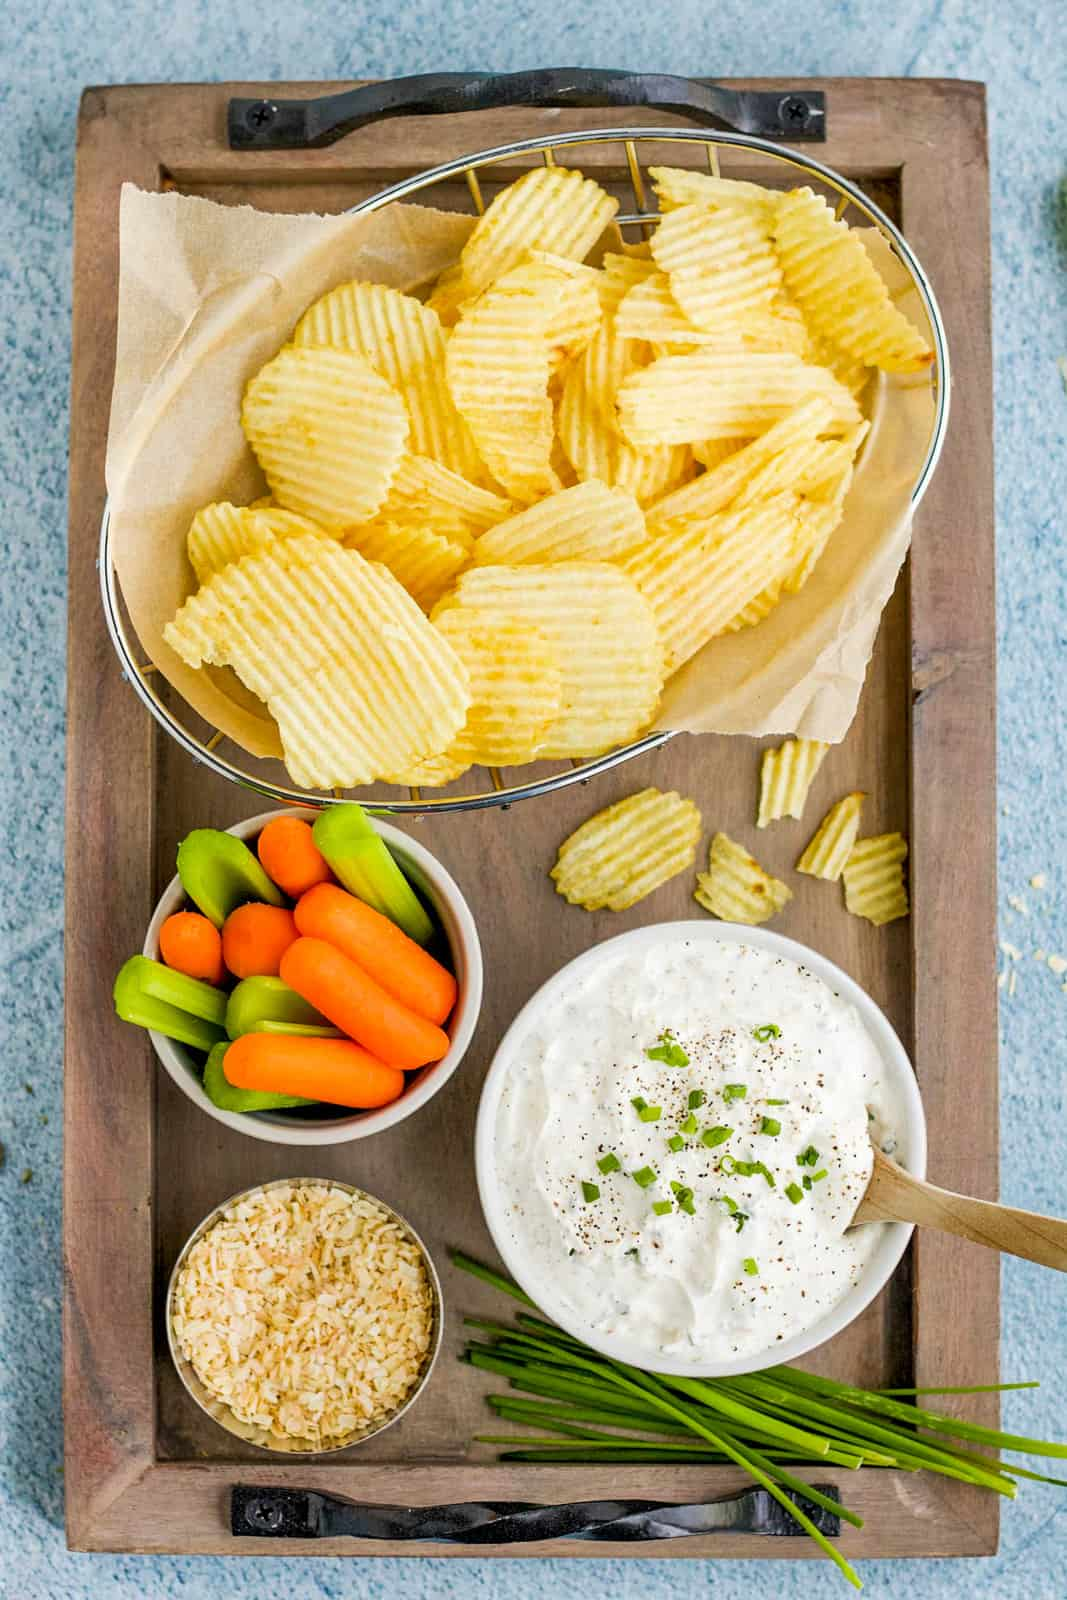 Serving platter with chips, vegetables and French Onion Dip